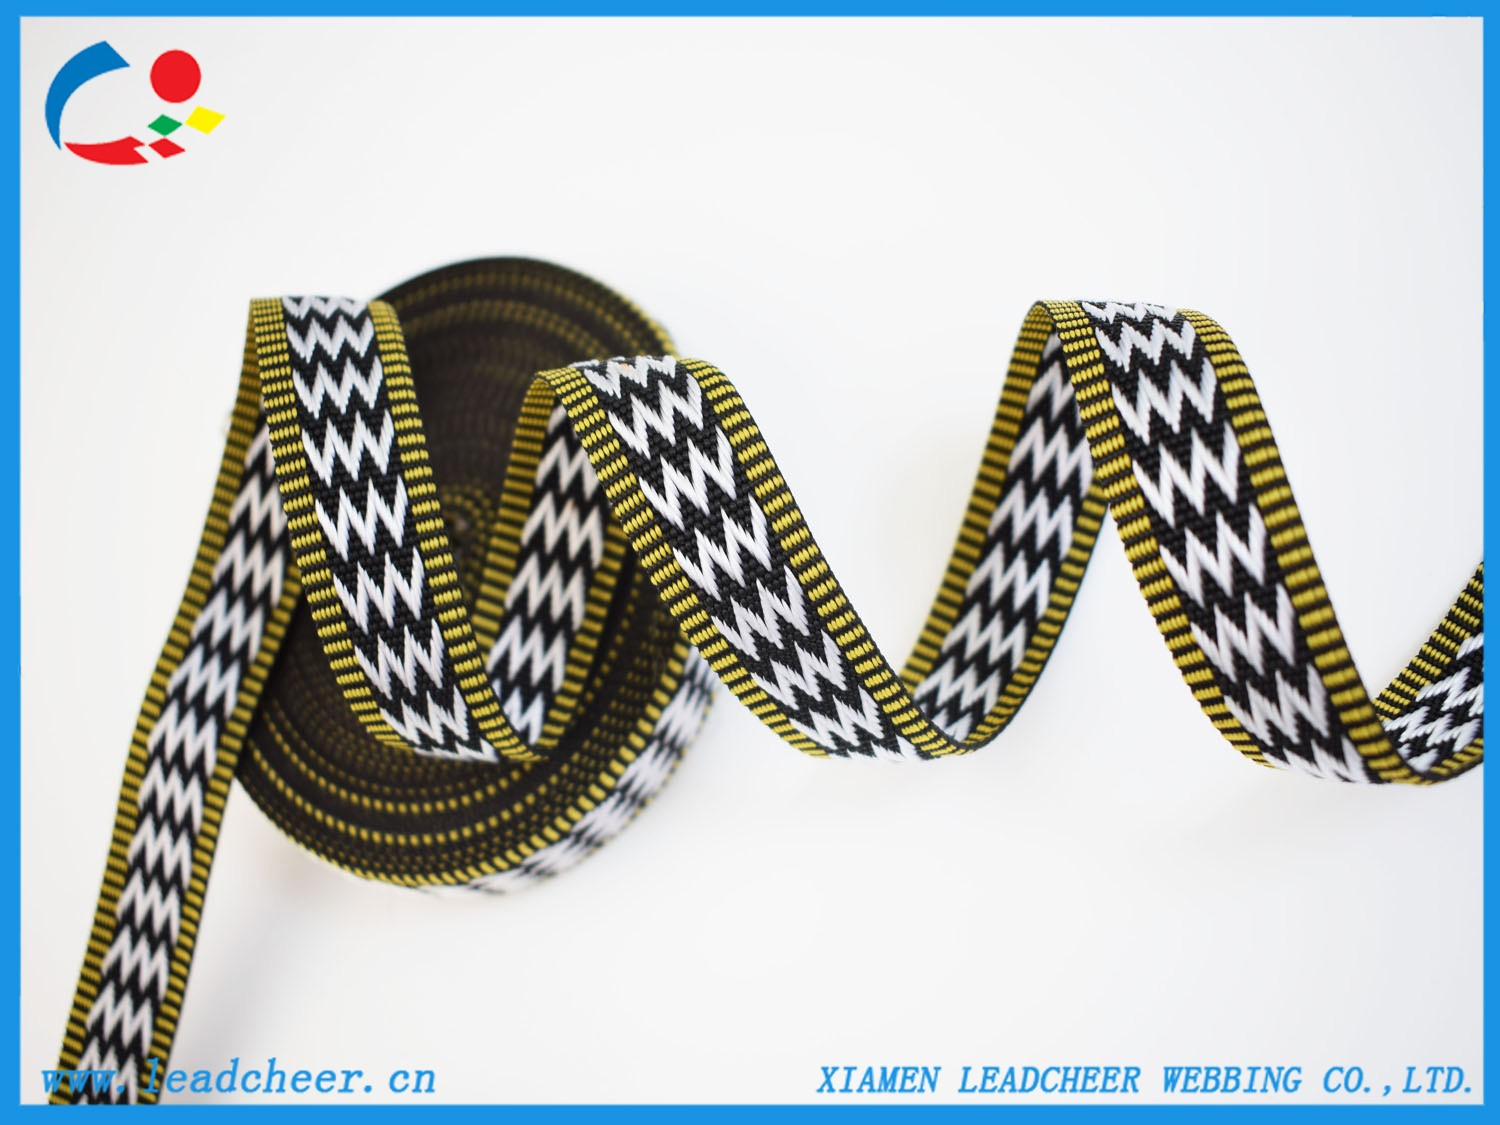 High quality Jacquard Webbing Strap Quotes,China Jacquard Webbing Strap Factory,Jacquard Webbing Strap Purchasing